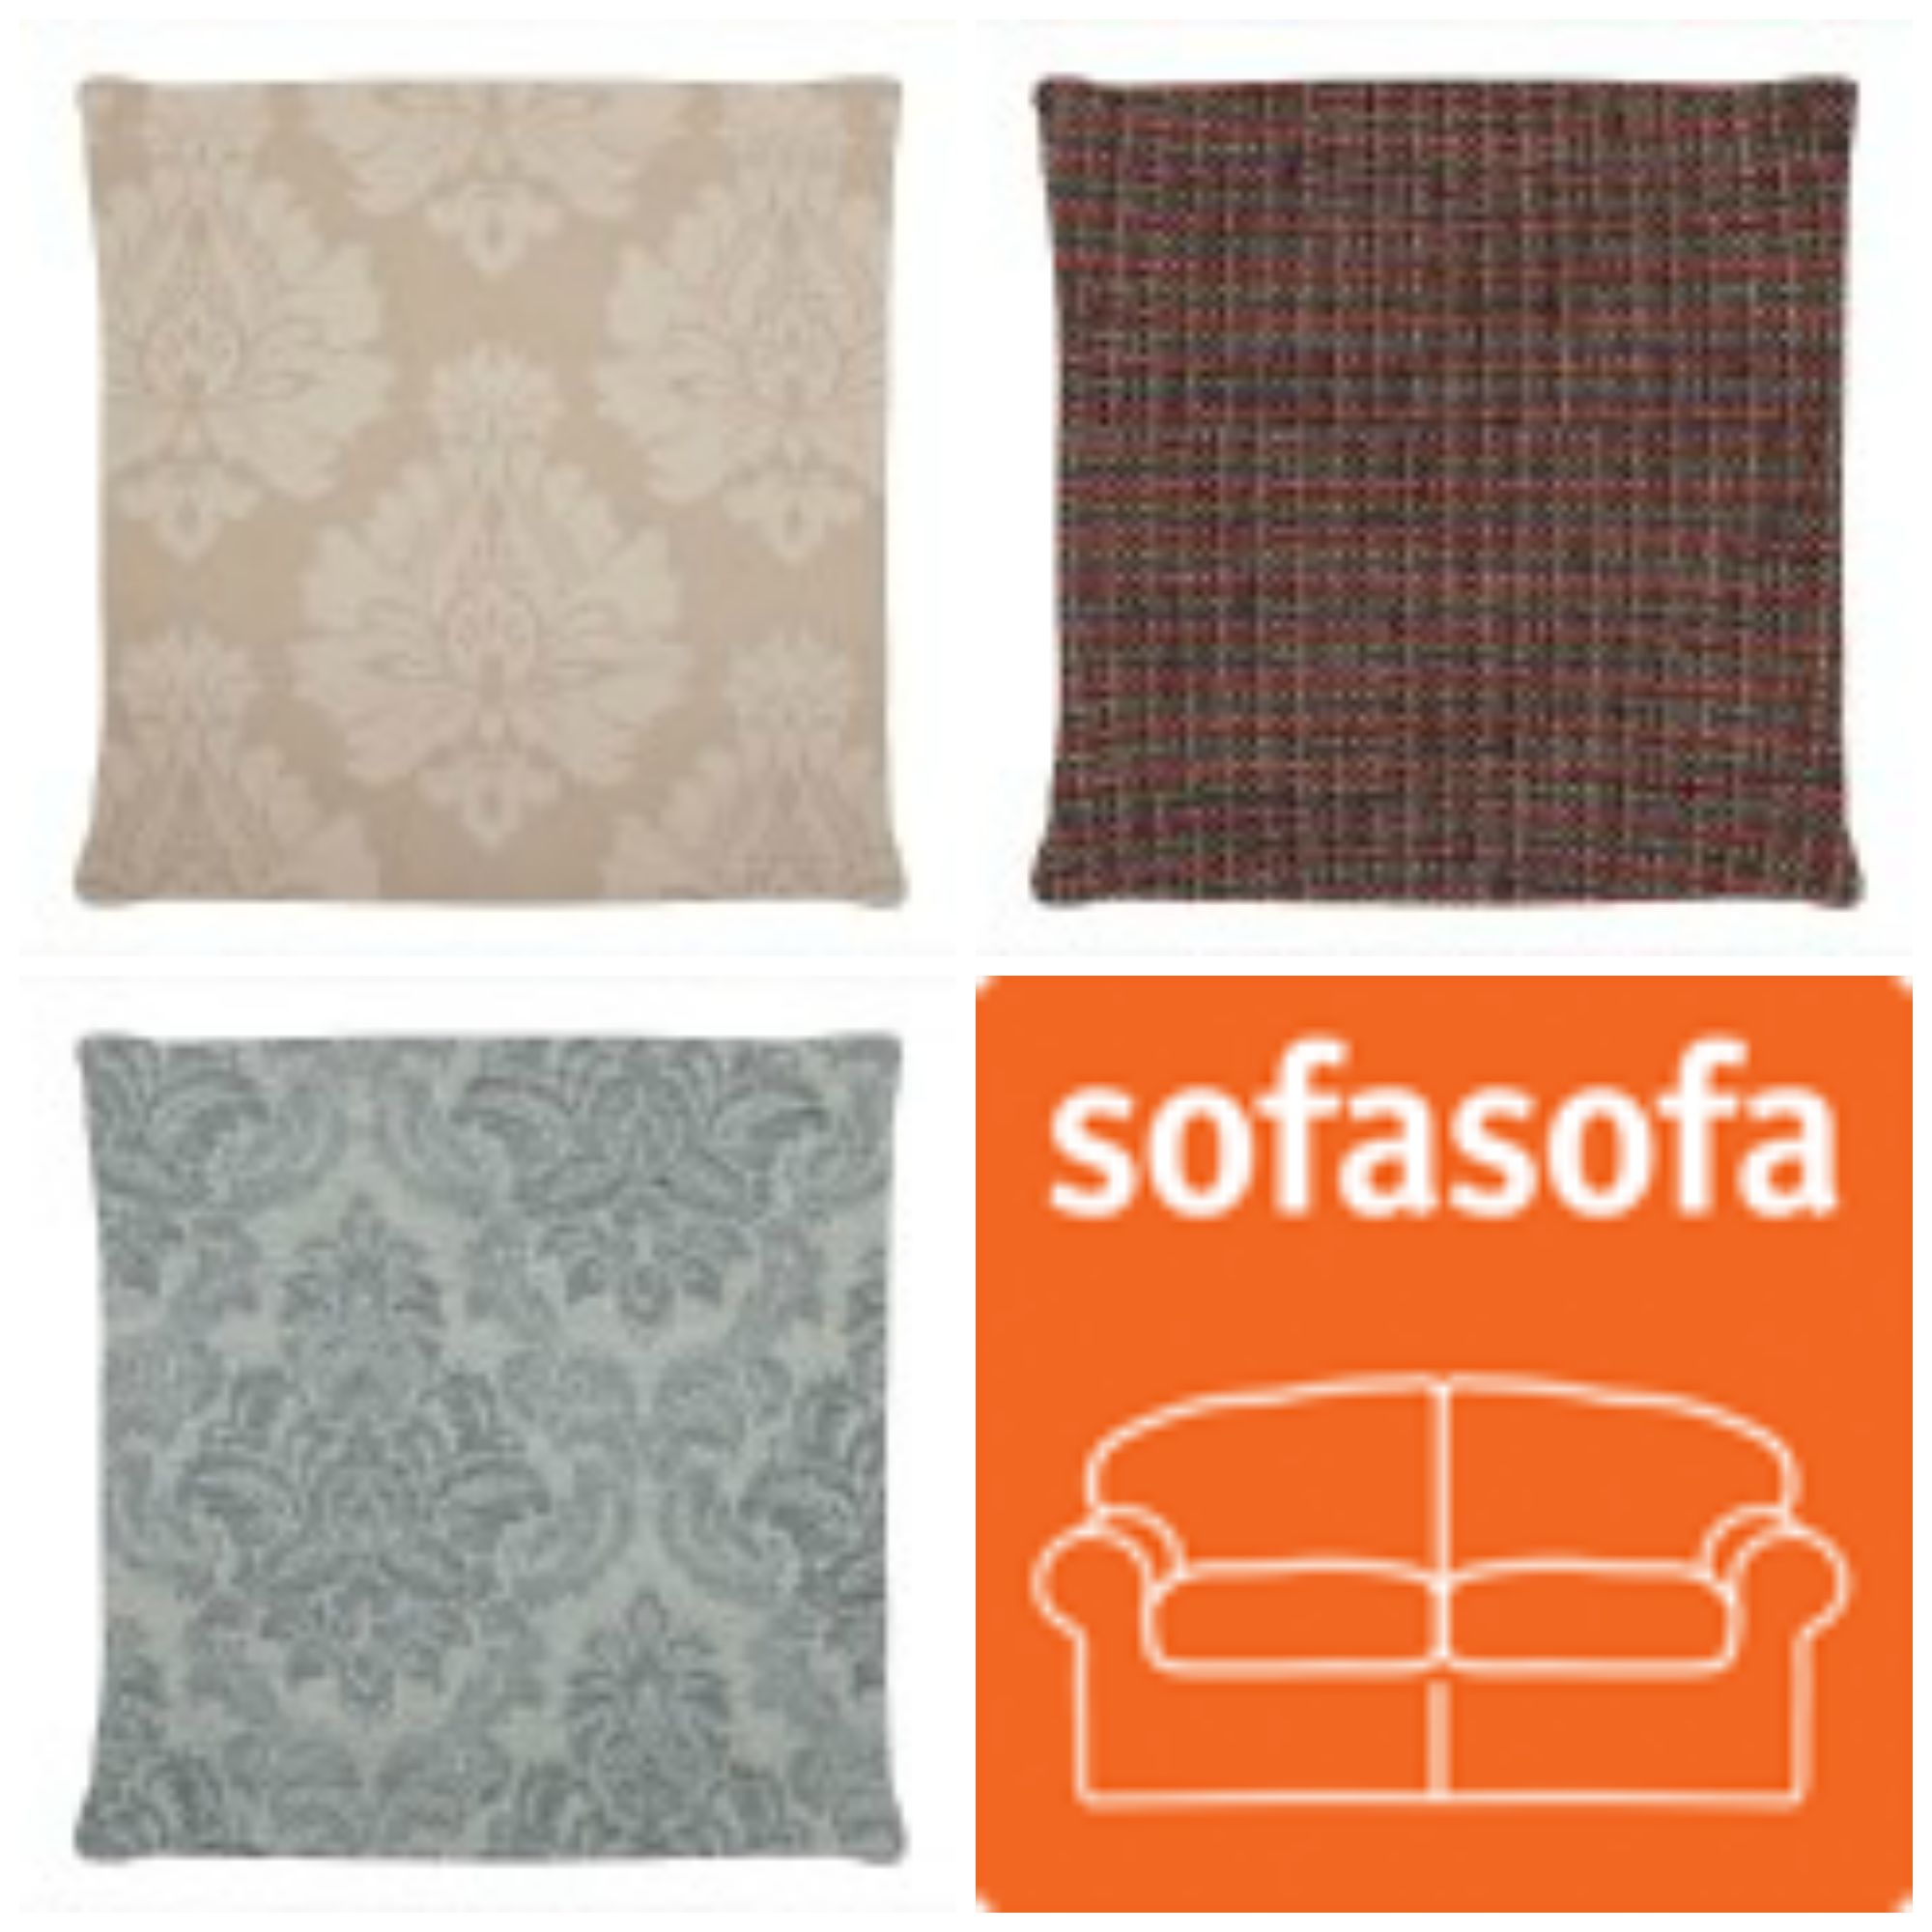 sofasofa reviews red and black sectional sofa interiors insider introducing the spirited